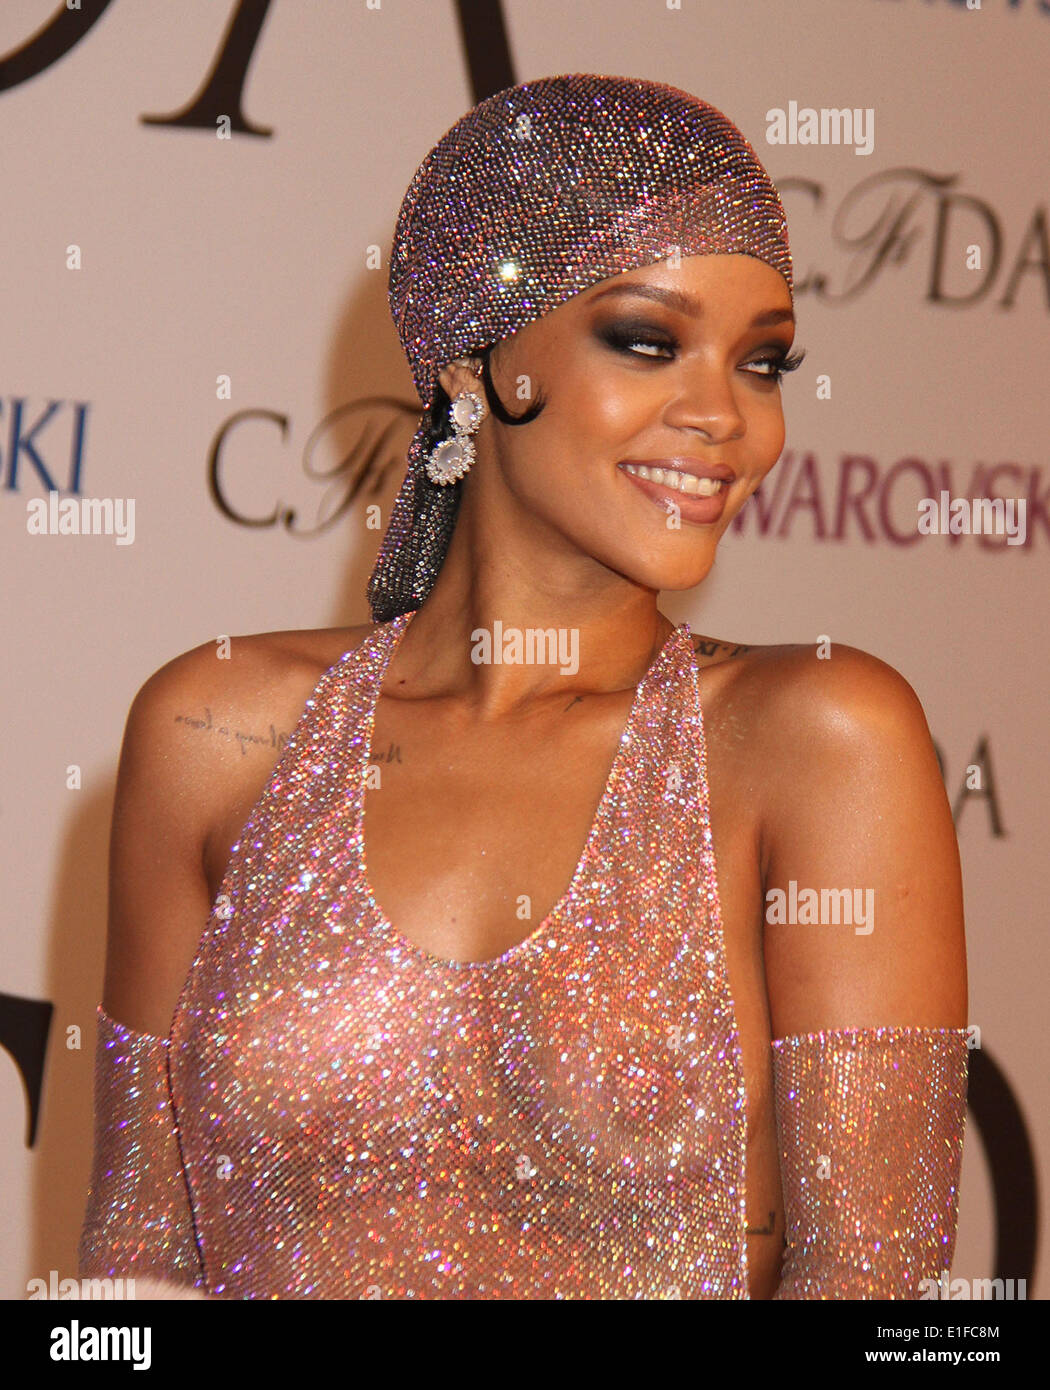 New York New York Usa 2nd June 2014 Singer Rihanna Attends The Stock Photo Alamy